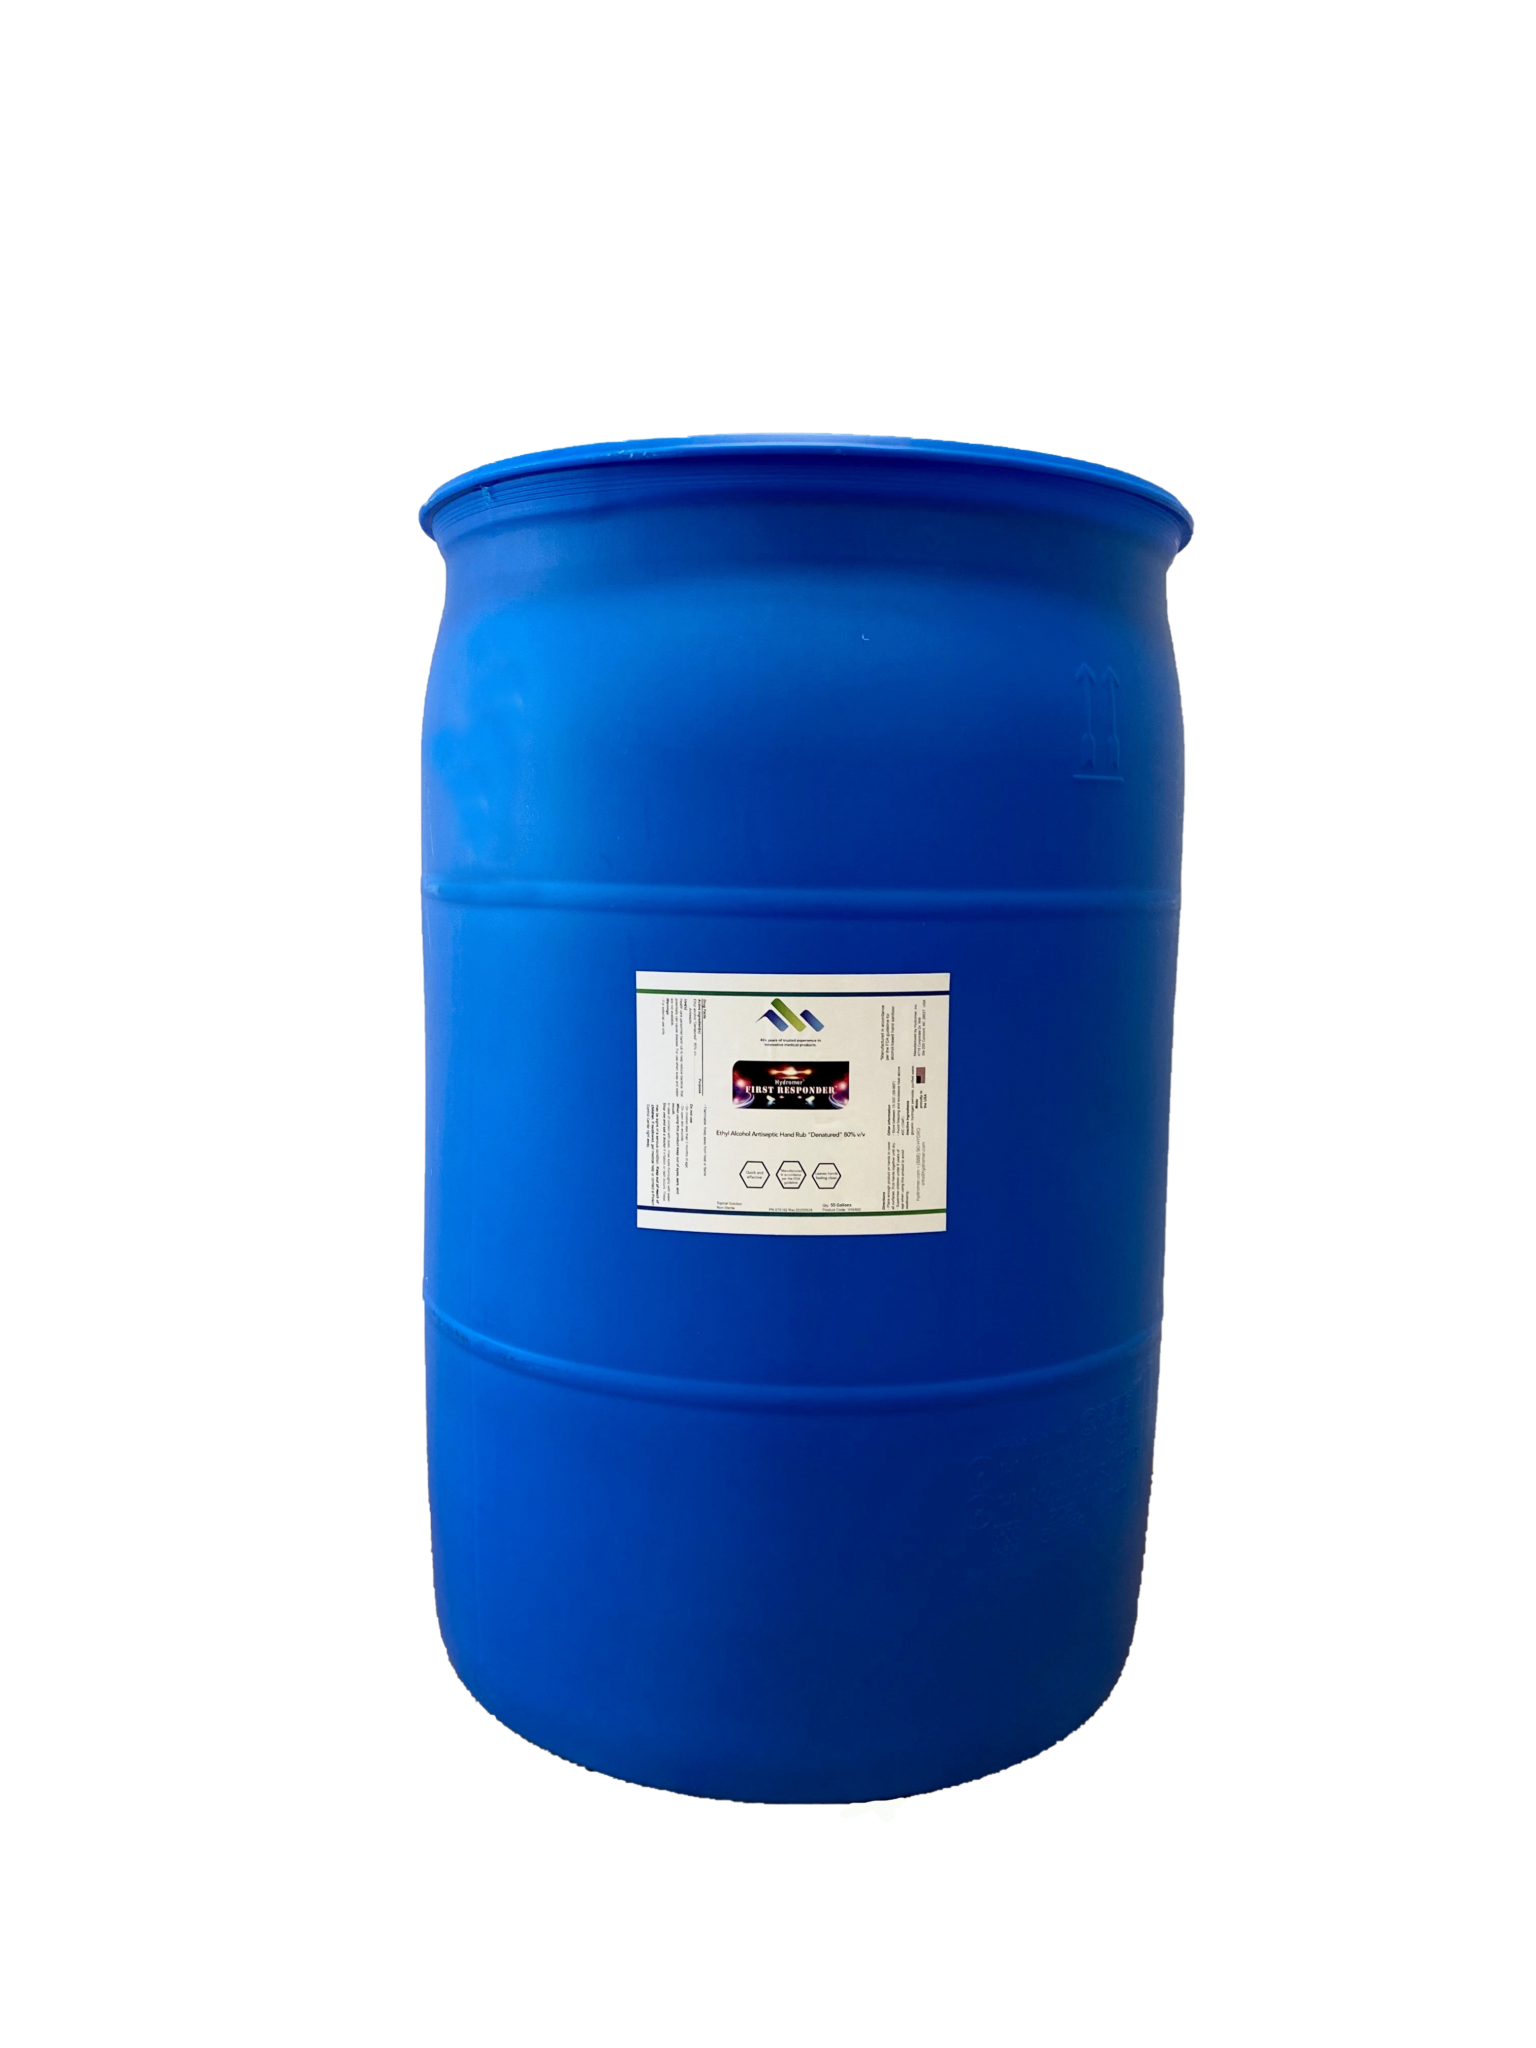 FDA Registered 55 Gallon Container(s) of Hydromer First Responder 80%v/v Liquid Hand Sanitizer(Unsc